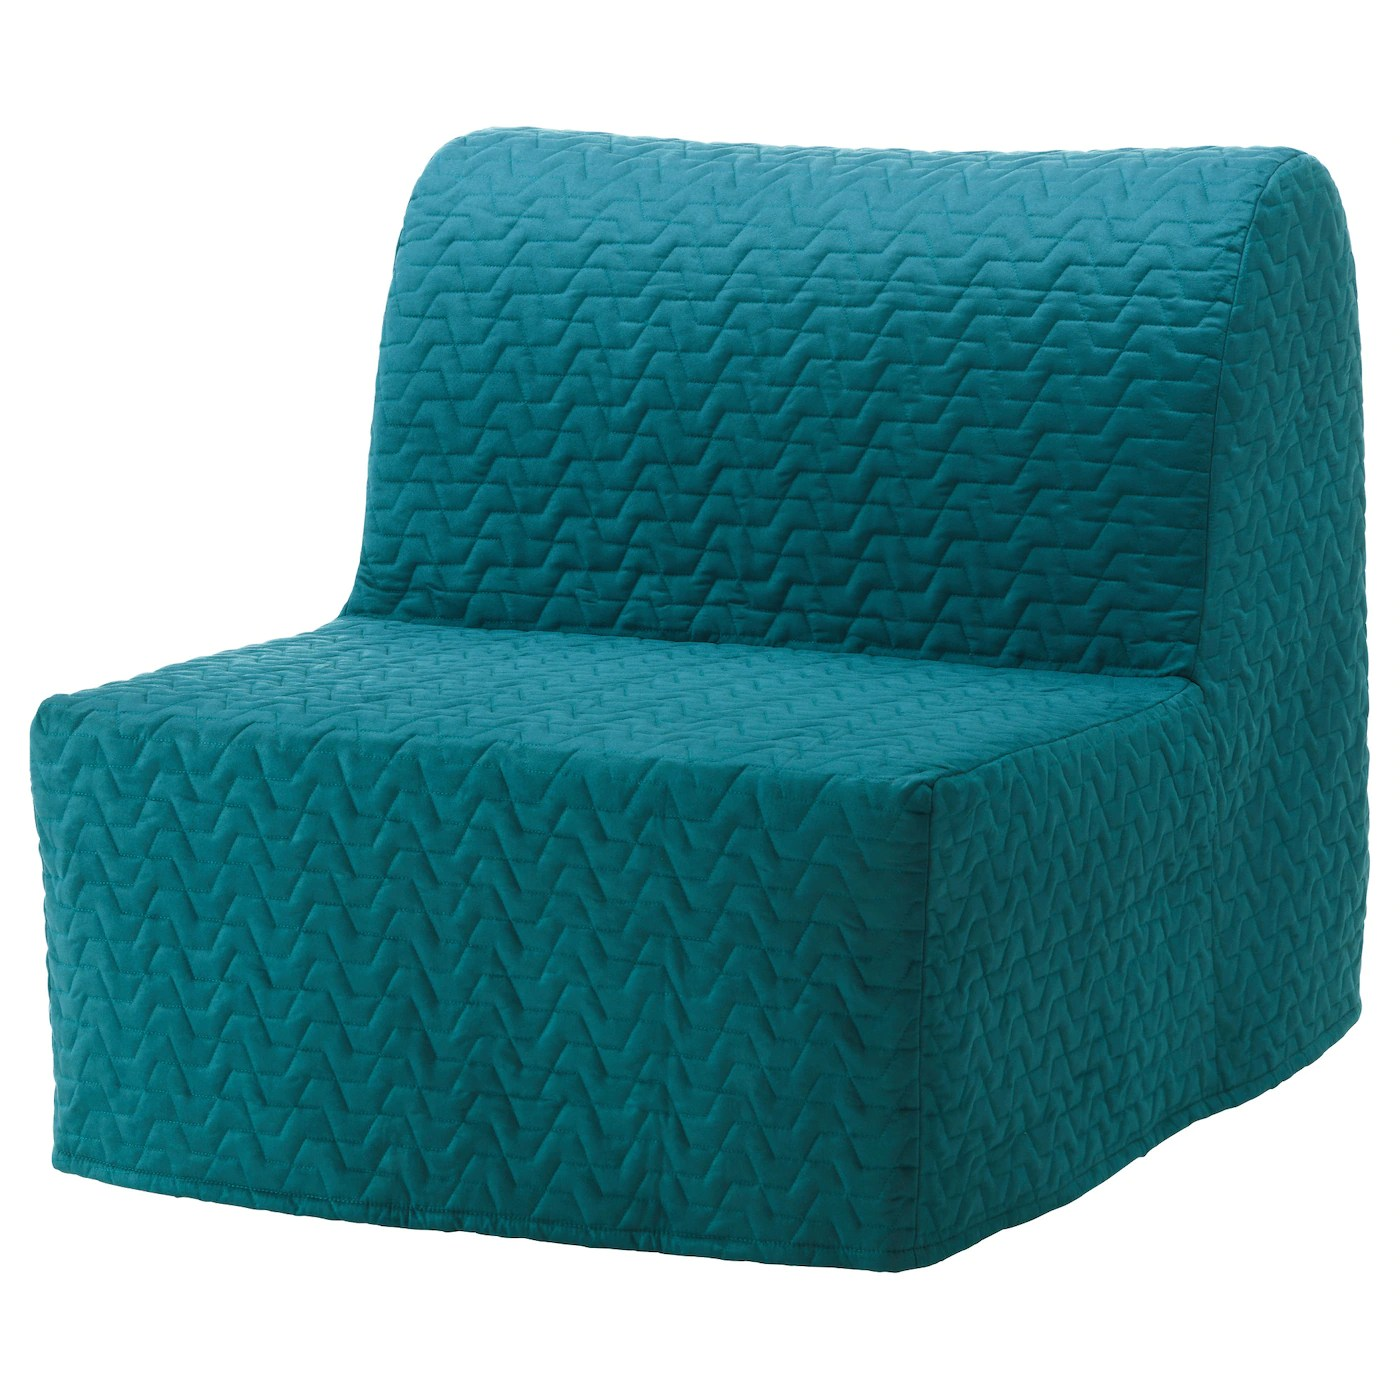 lycksele chair bed swivel no wheels uk murbo vallarum turquoise ikea